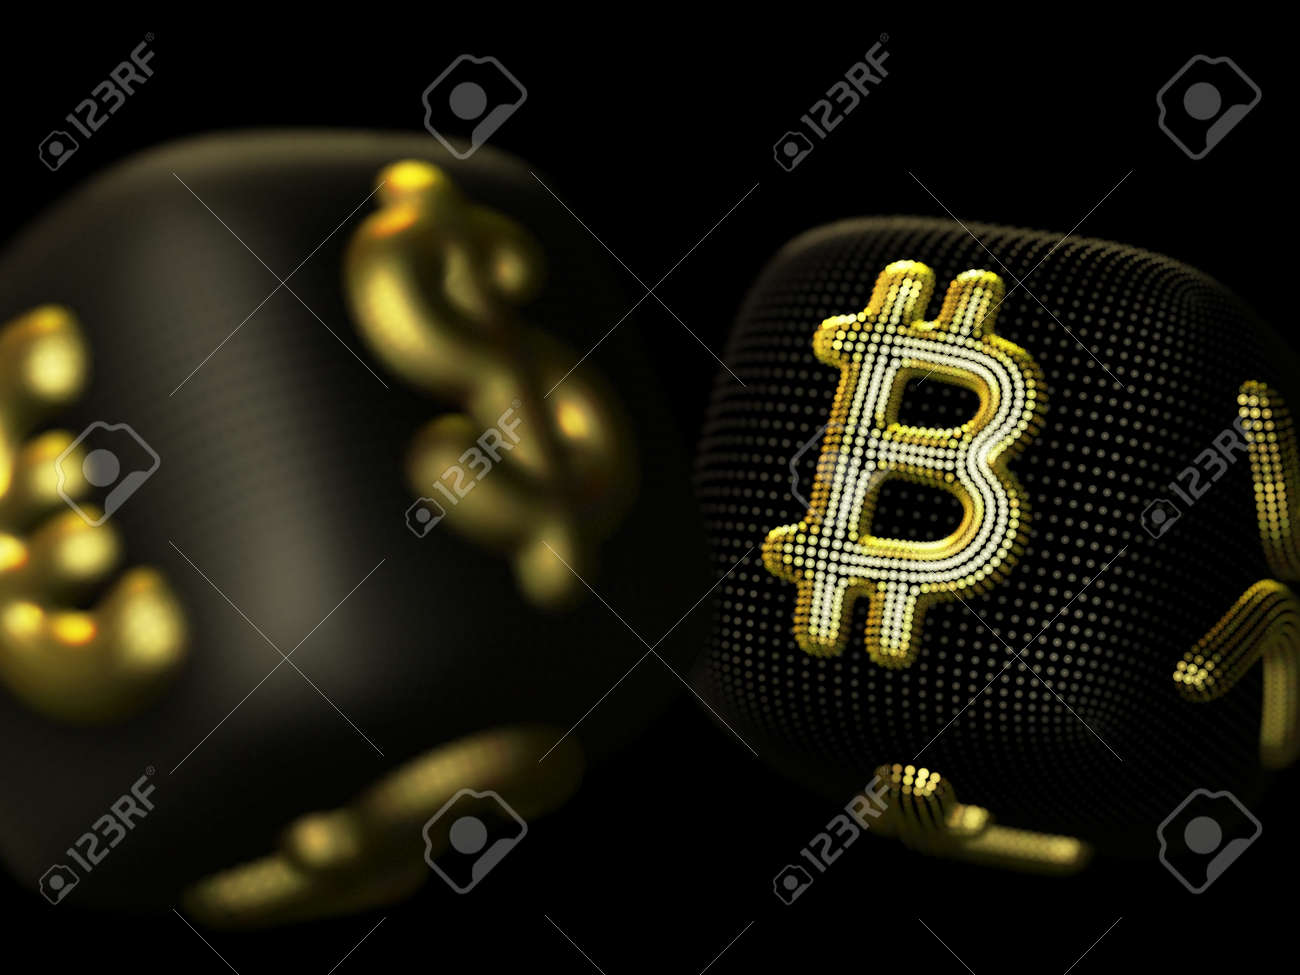 Digital 3D golden dices with cryptocurrency and fiat currency symbols Bitcoin and Dollar. Concept of fortune in crypto investing and stock exchange trading. Black background. Vector illustration - 165121934